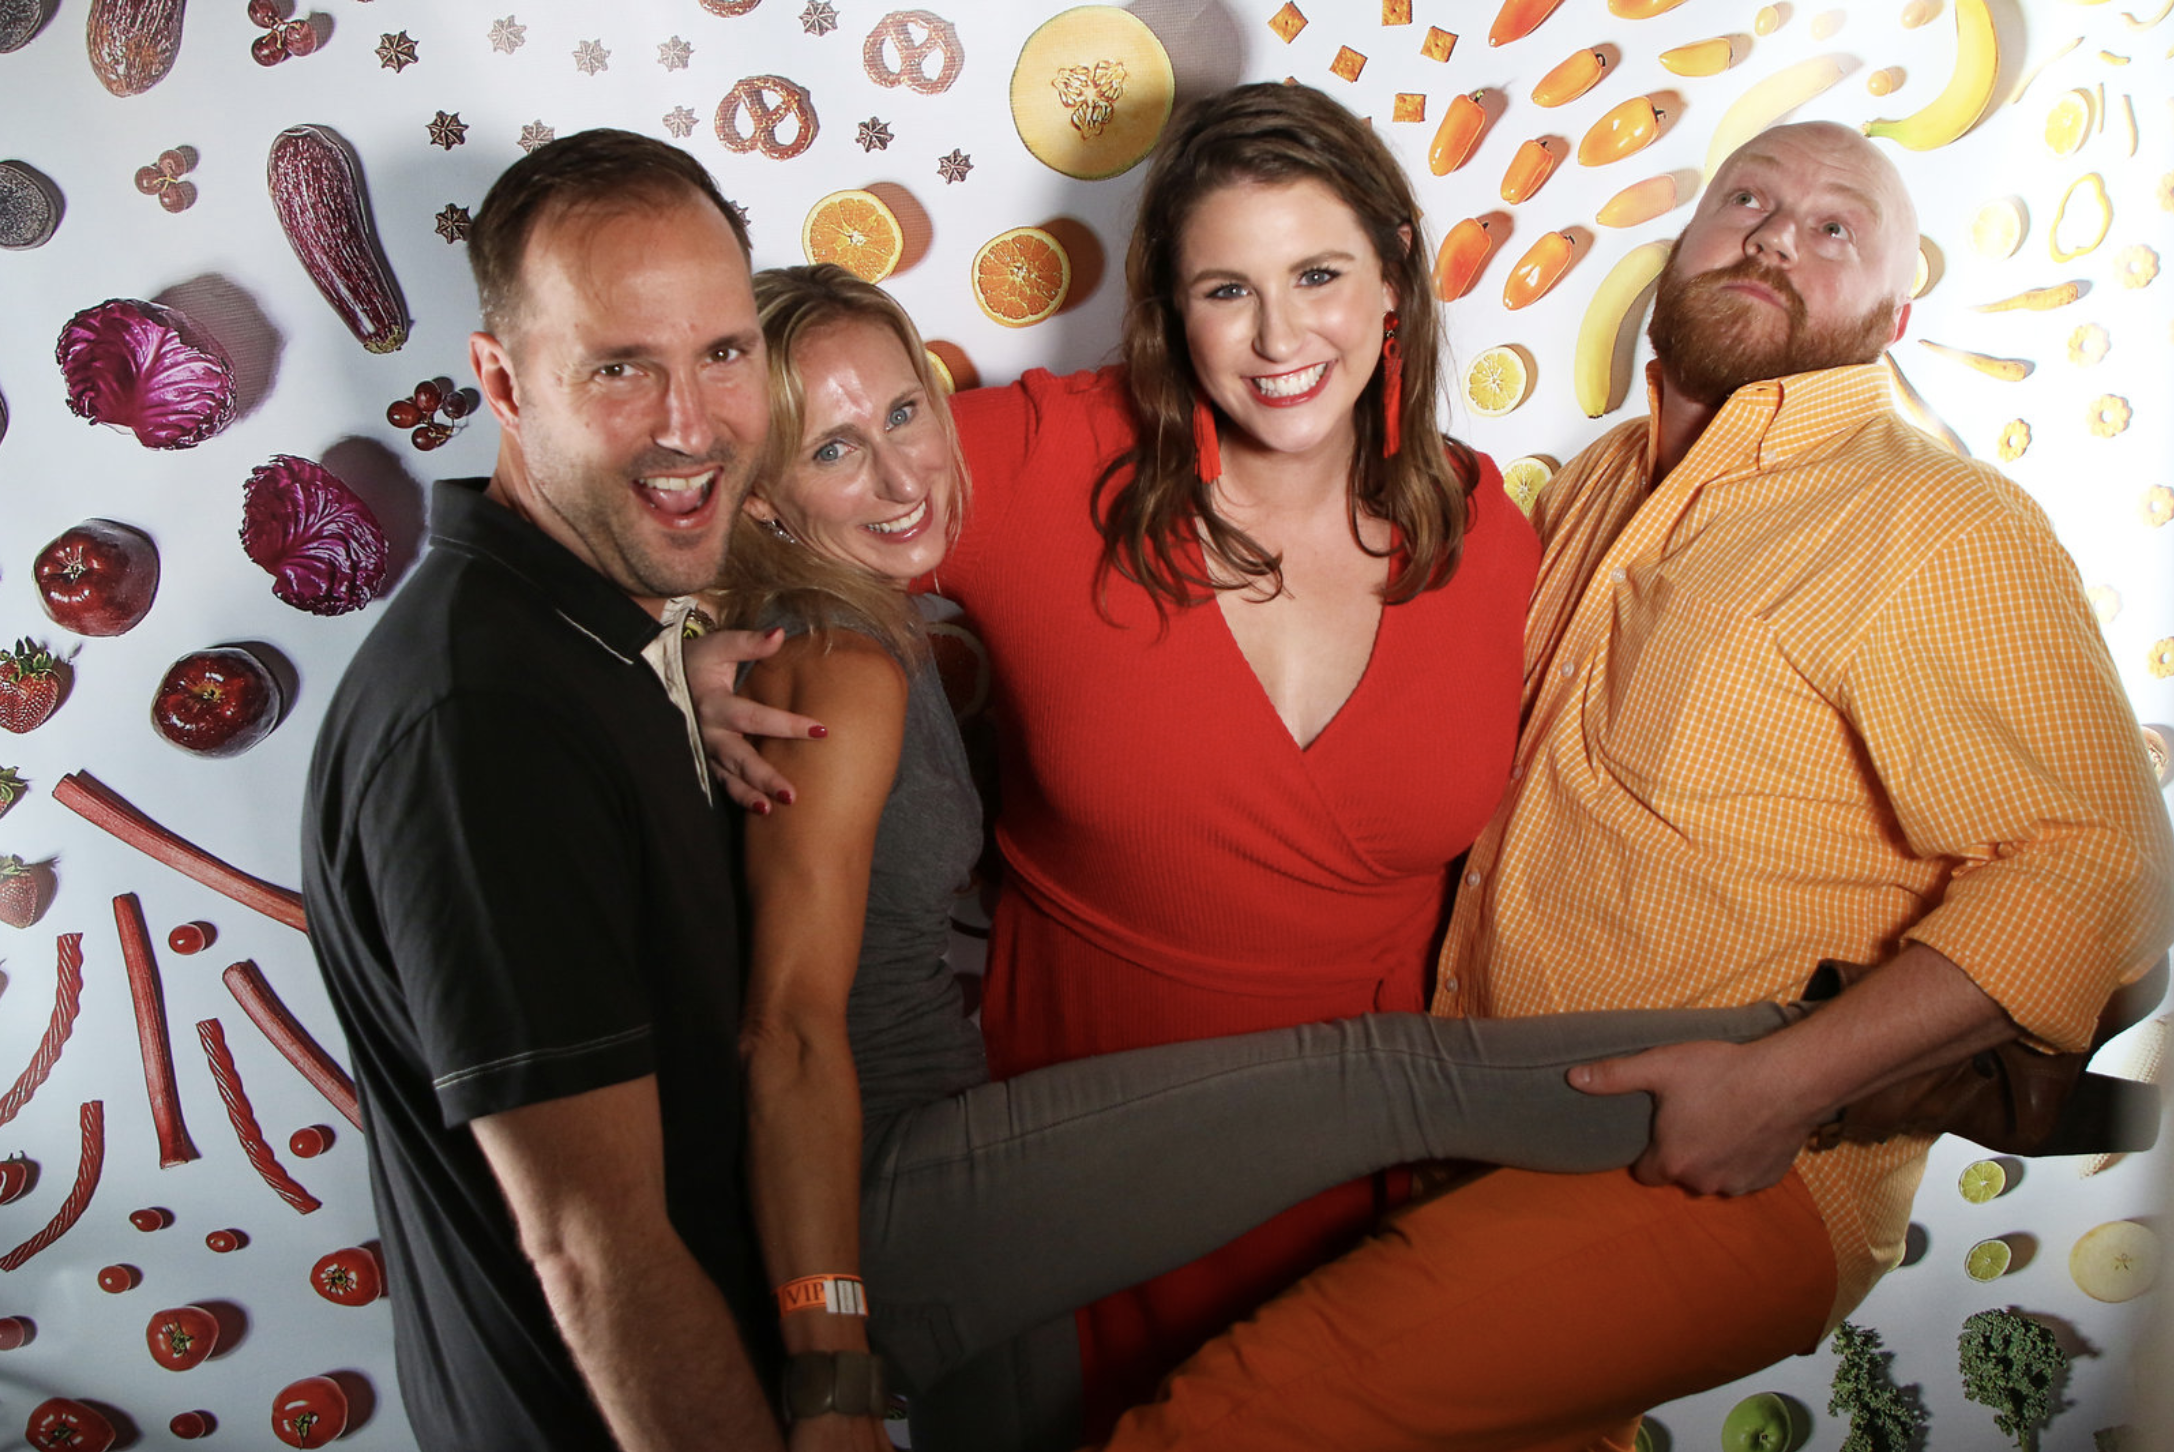 Guests enjoying our food themed photo booth designed by Limonata Creative and photographed by Tom McCorkle.